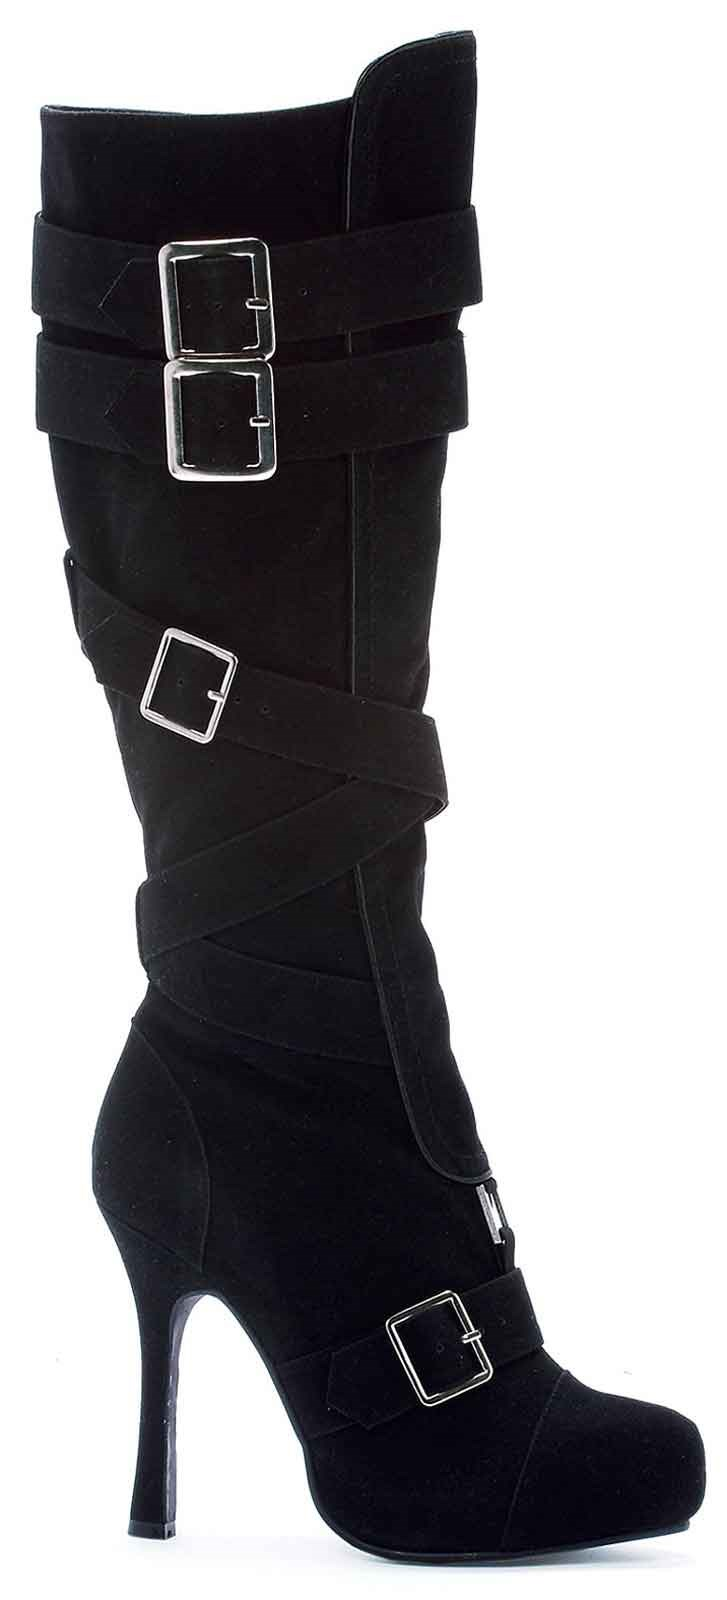 Boots Adult Costume 54